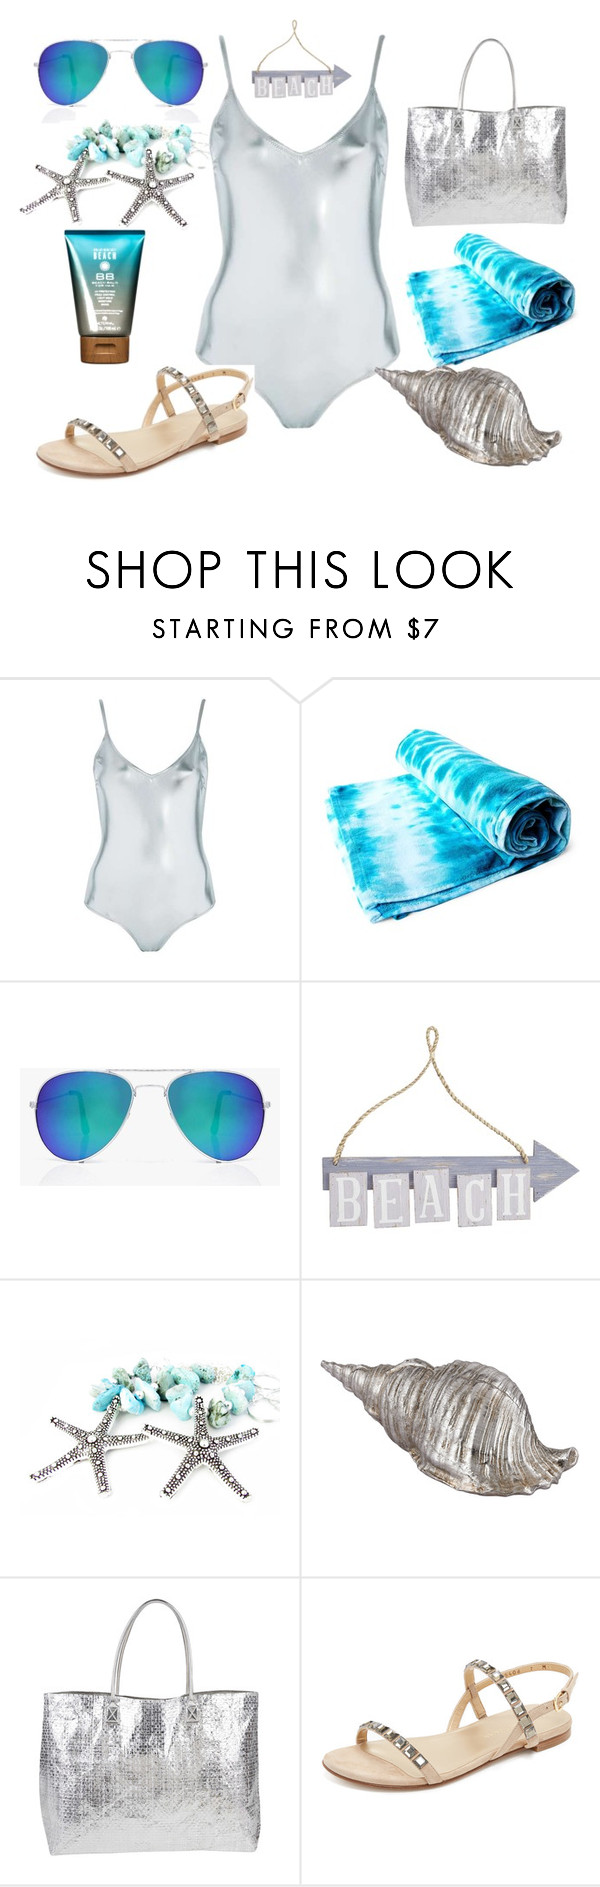 """""""SILVERY MAVERY"""" by julissadegrijze on Polyvore featuring Topshop, Boohoo, Pier 1 Imports, Armitage Avenue, Stuart Weitzman and Alterna"""